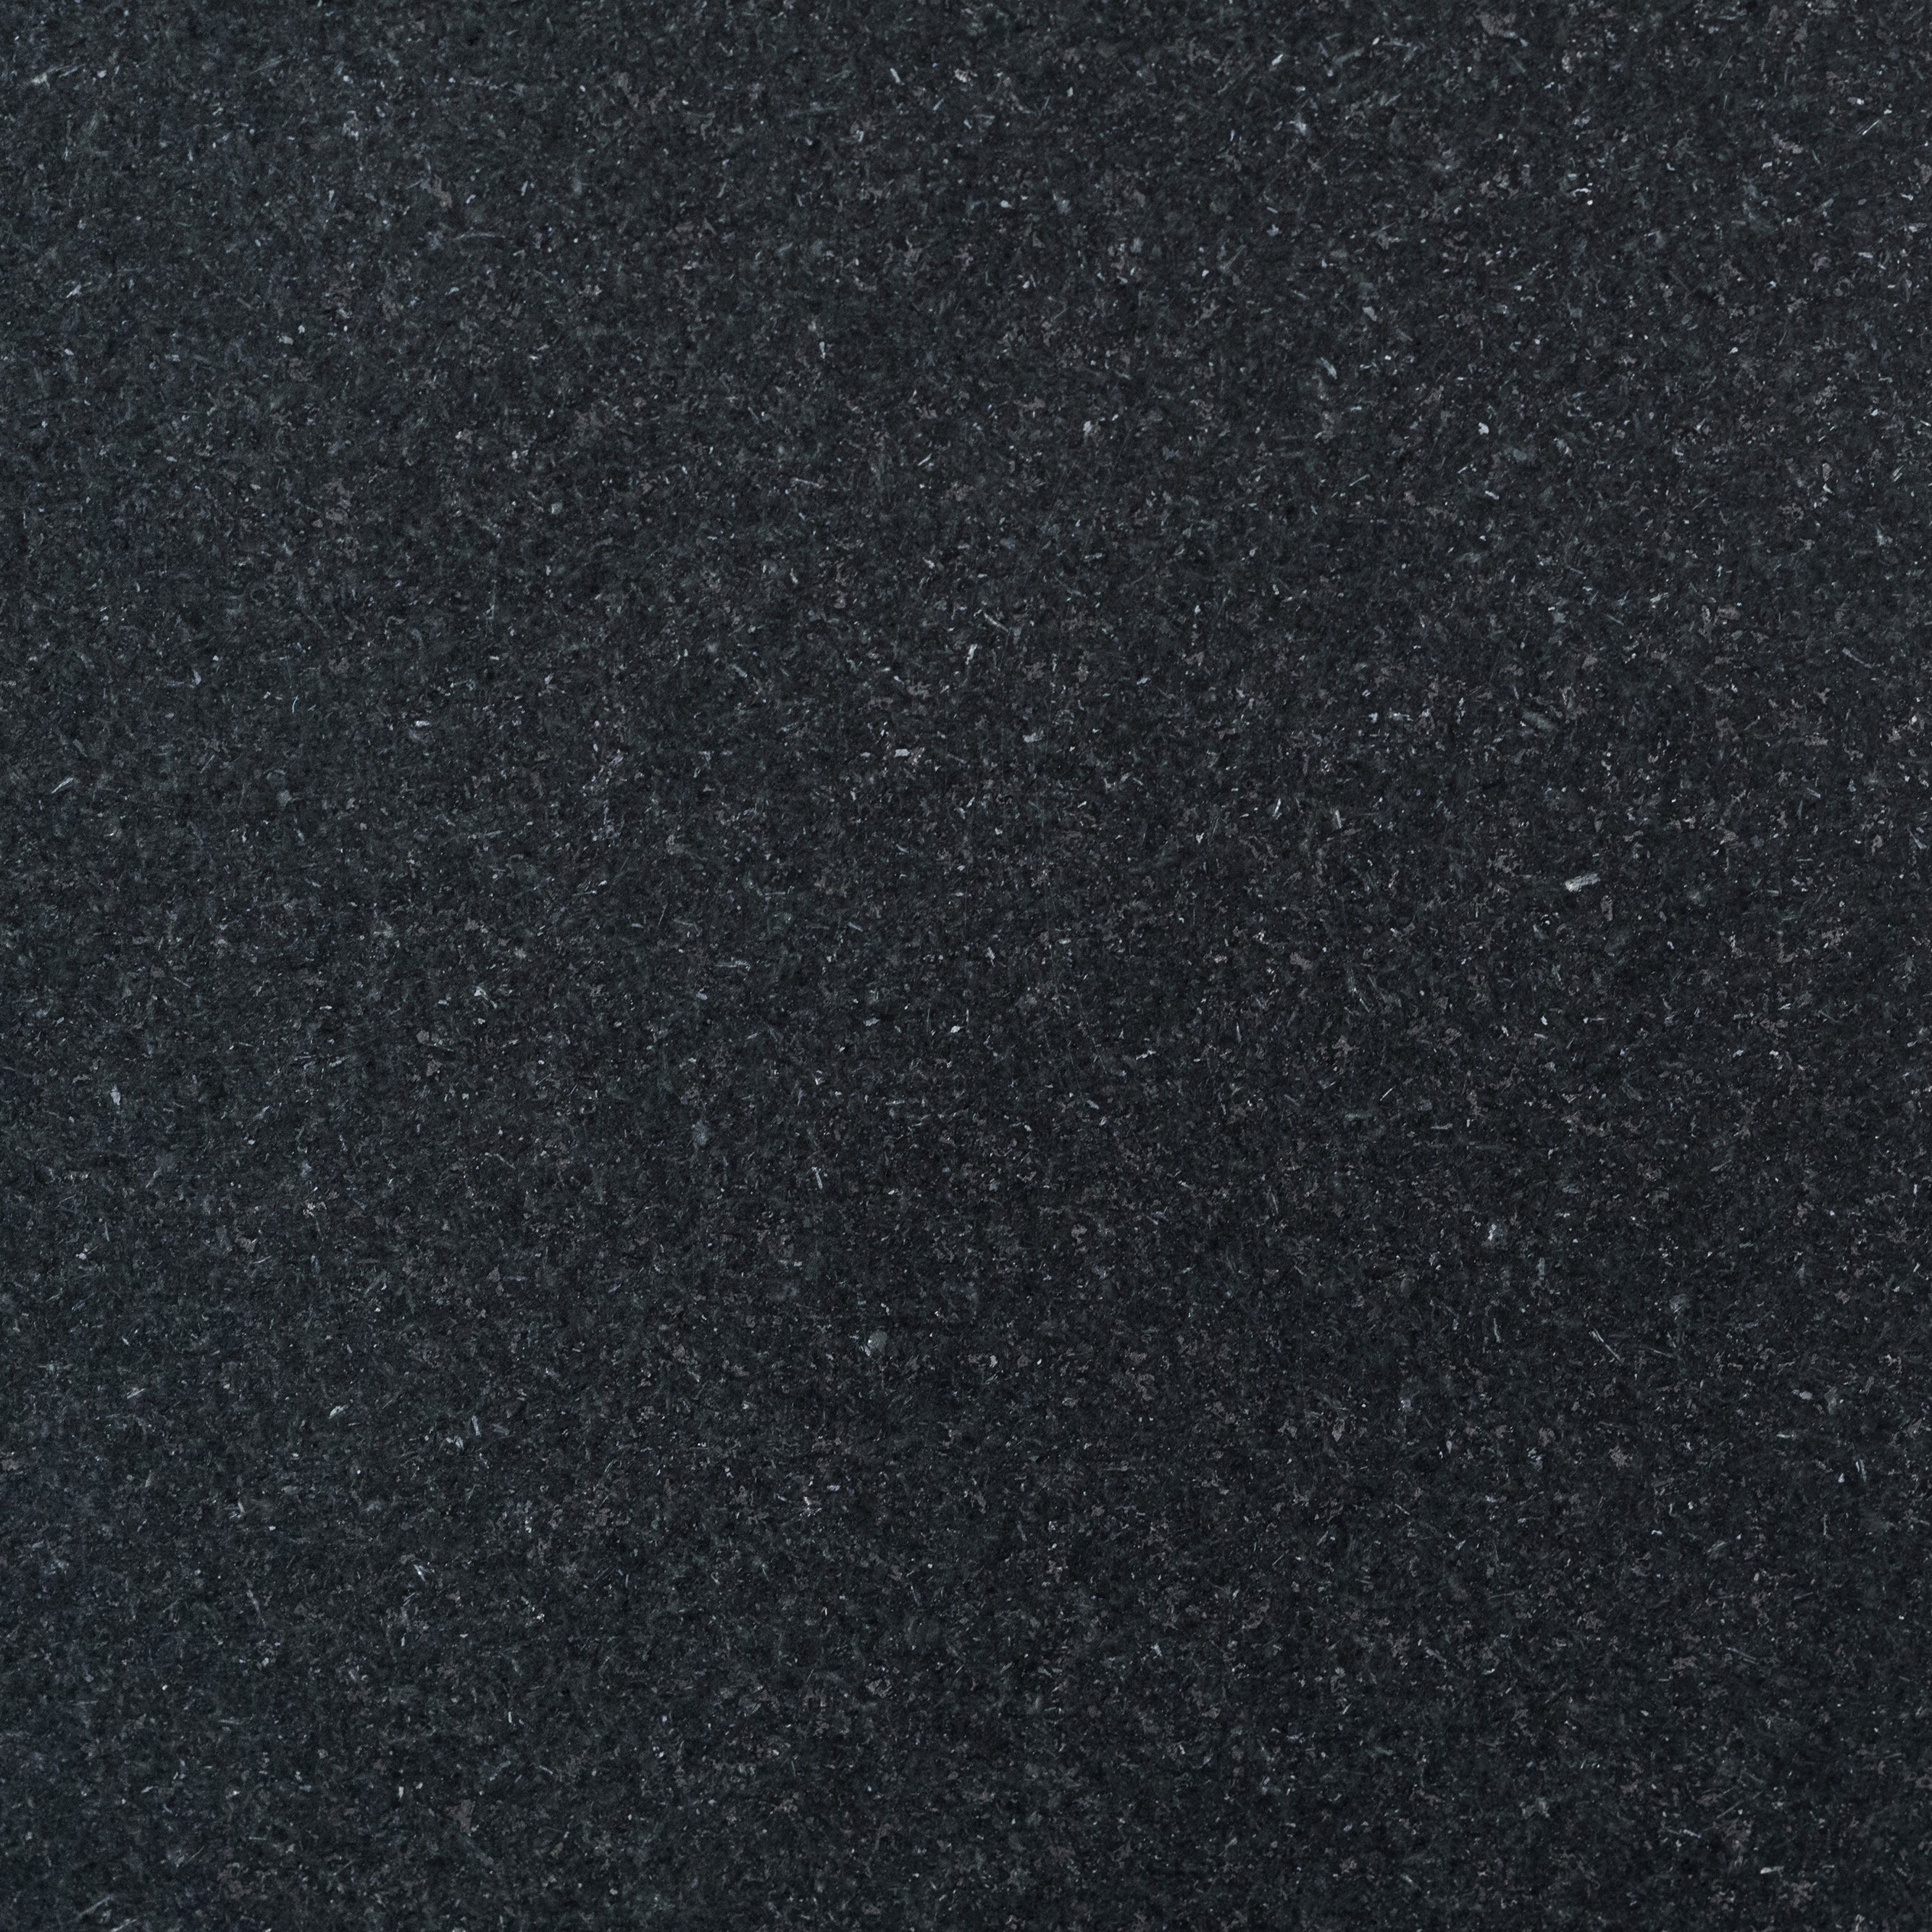 Absolute Black | 9 Granites That Just Might Make You Stop Hating on Granite | Interiors for Families | Blog of Kelly Rogers Interiors